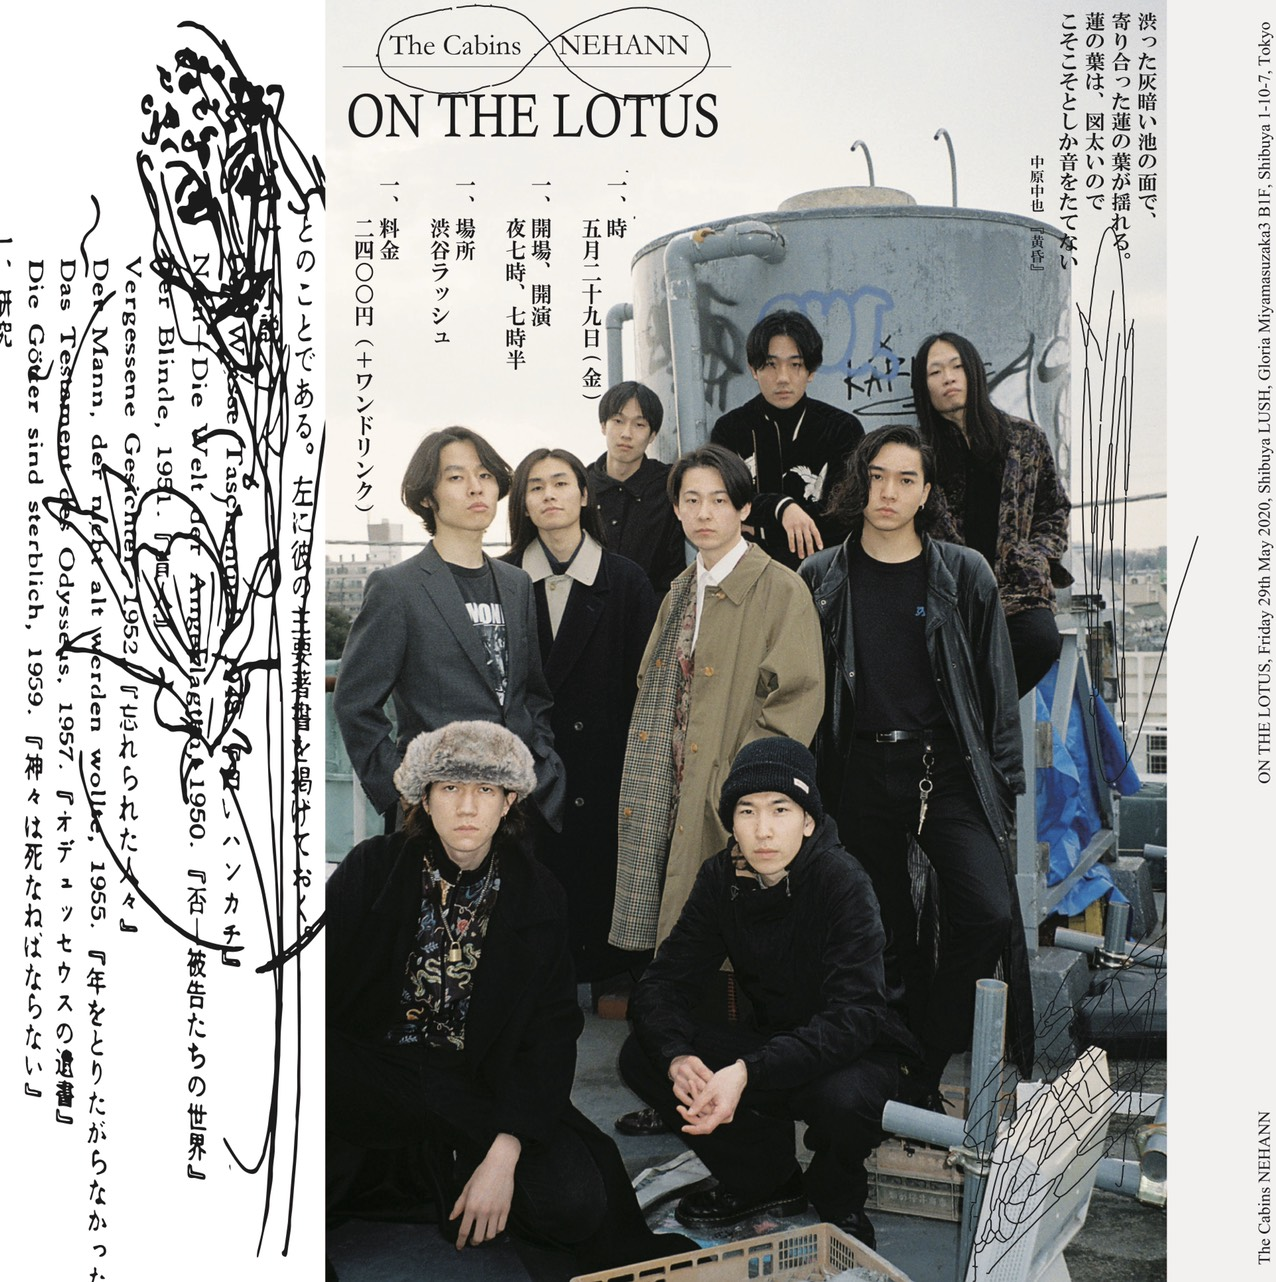 DOUBLE RELEASE TWOMAN The Cabins × NEHANN 「ON THE LOTUS」